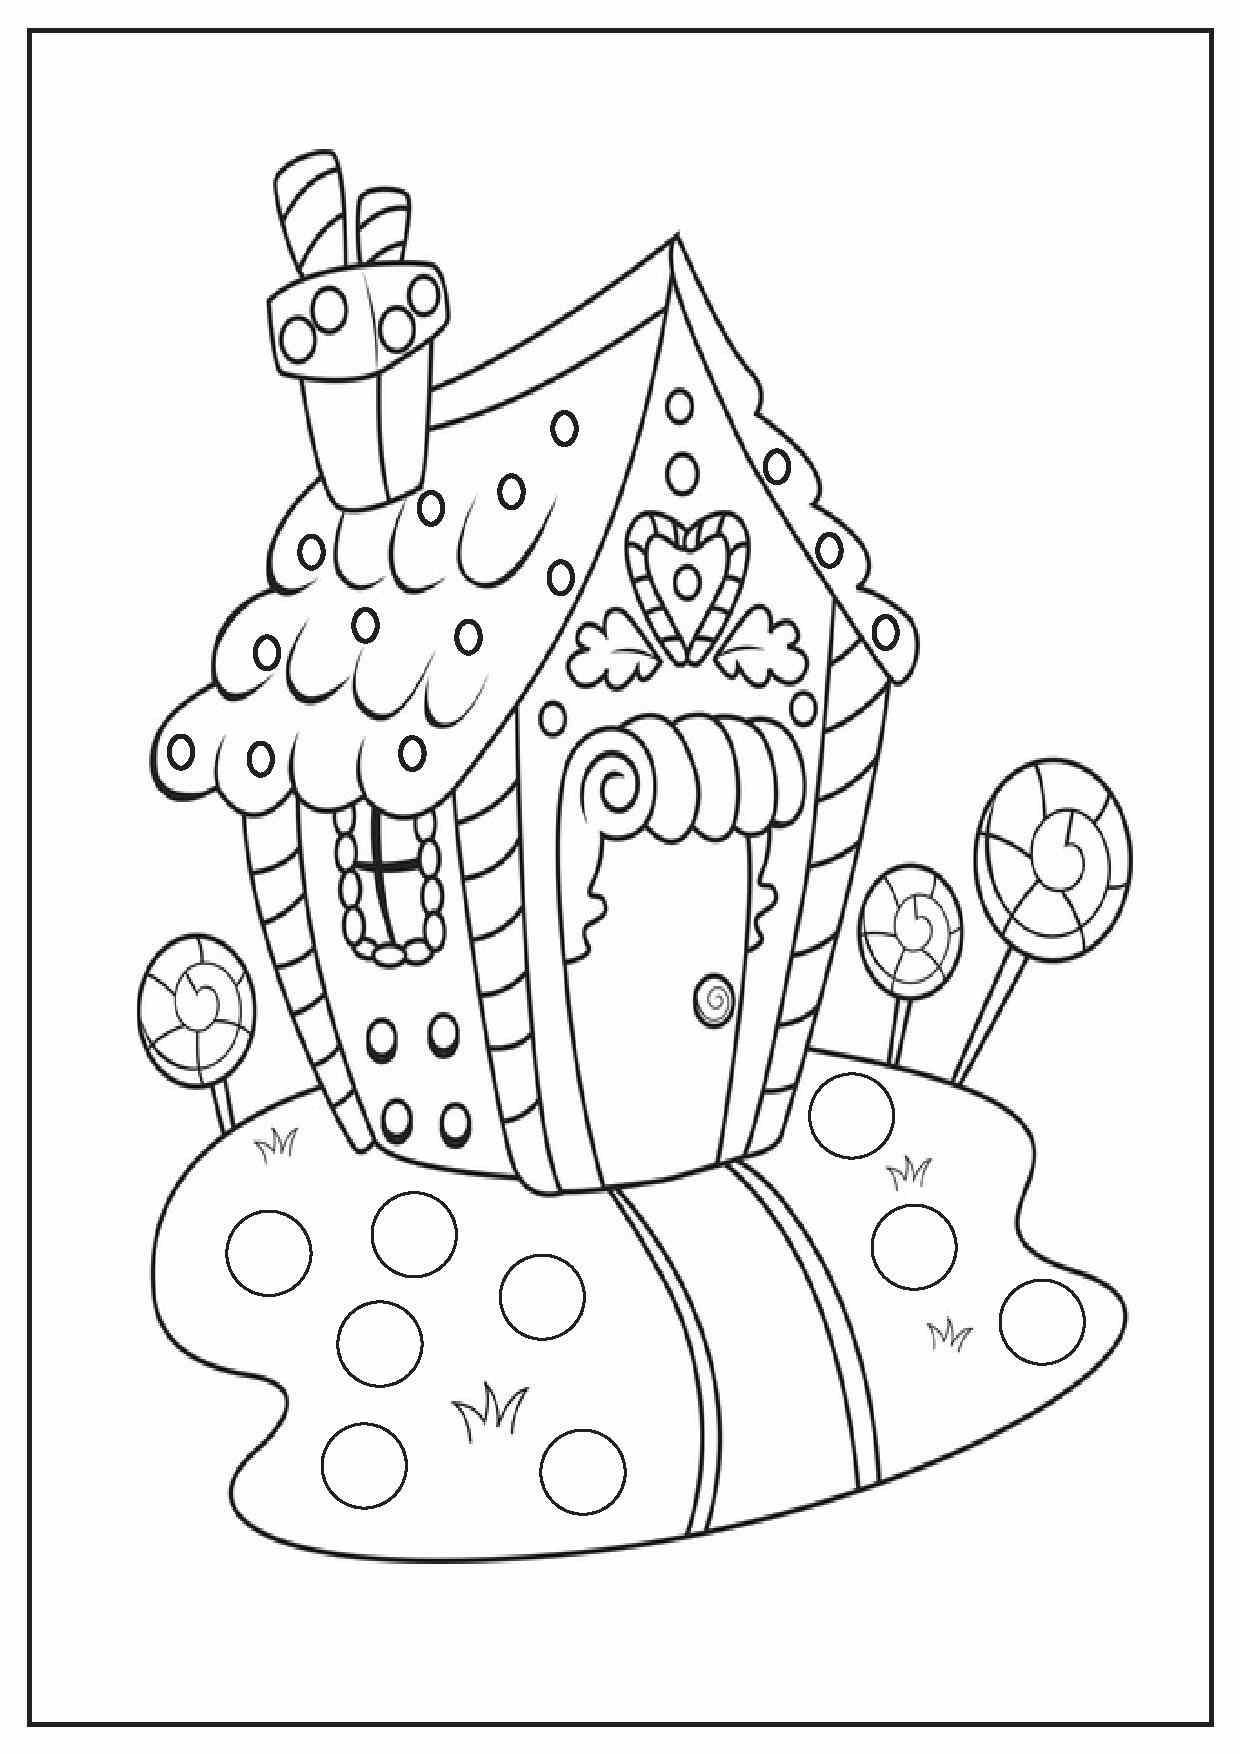 coloring sheets you can print coloring pages printable animals coloring pages sheets can coloring you print sheets